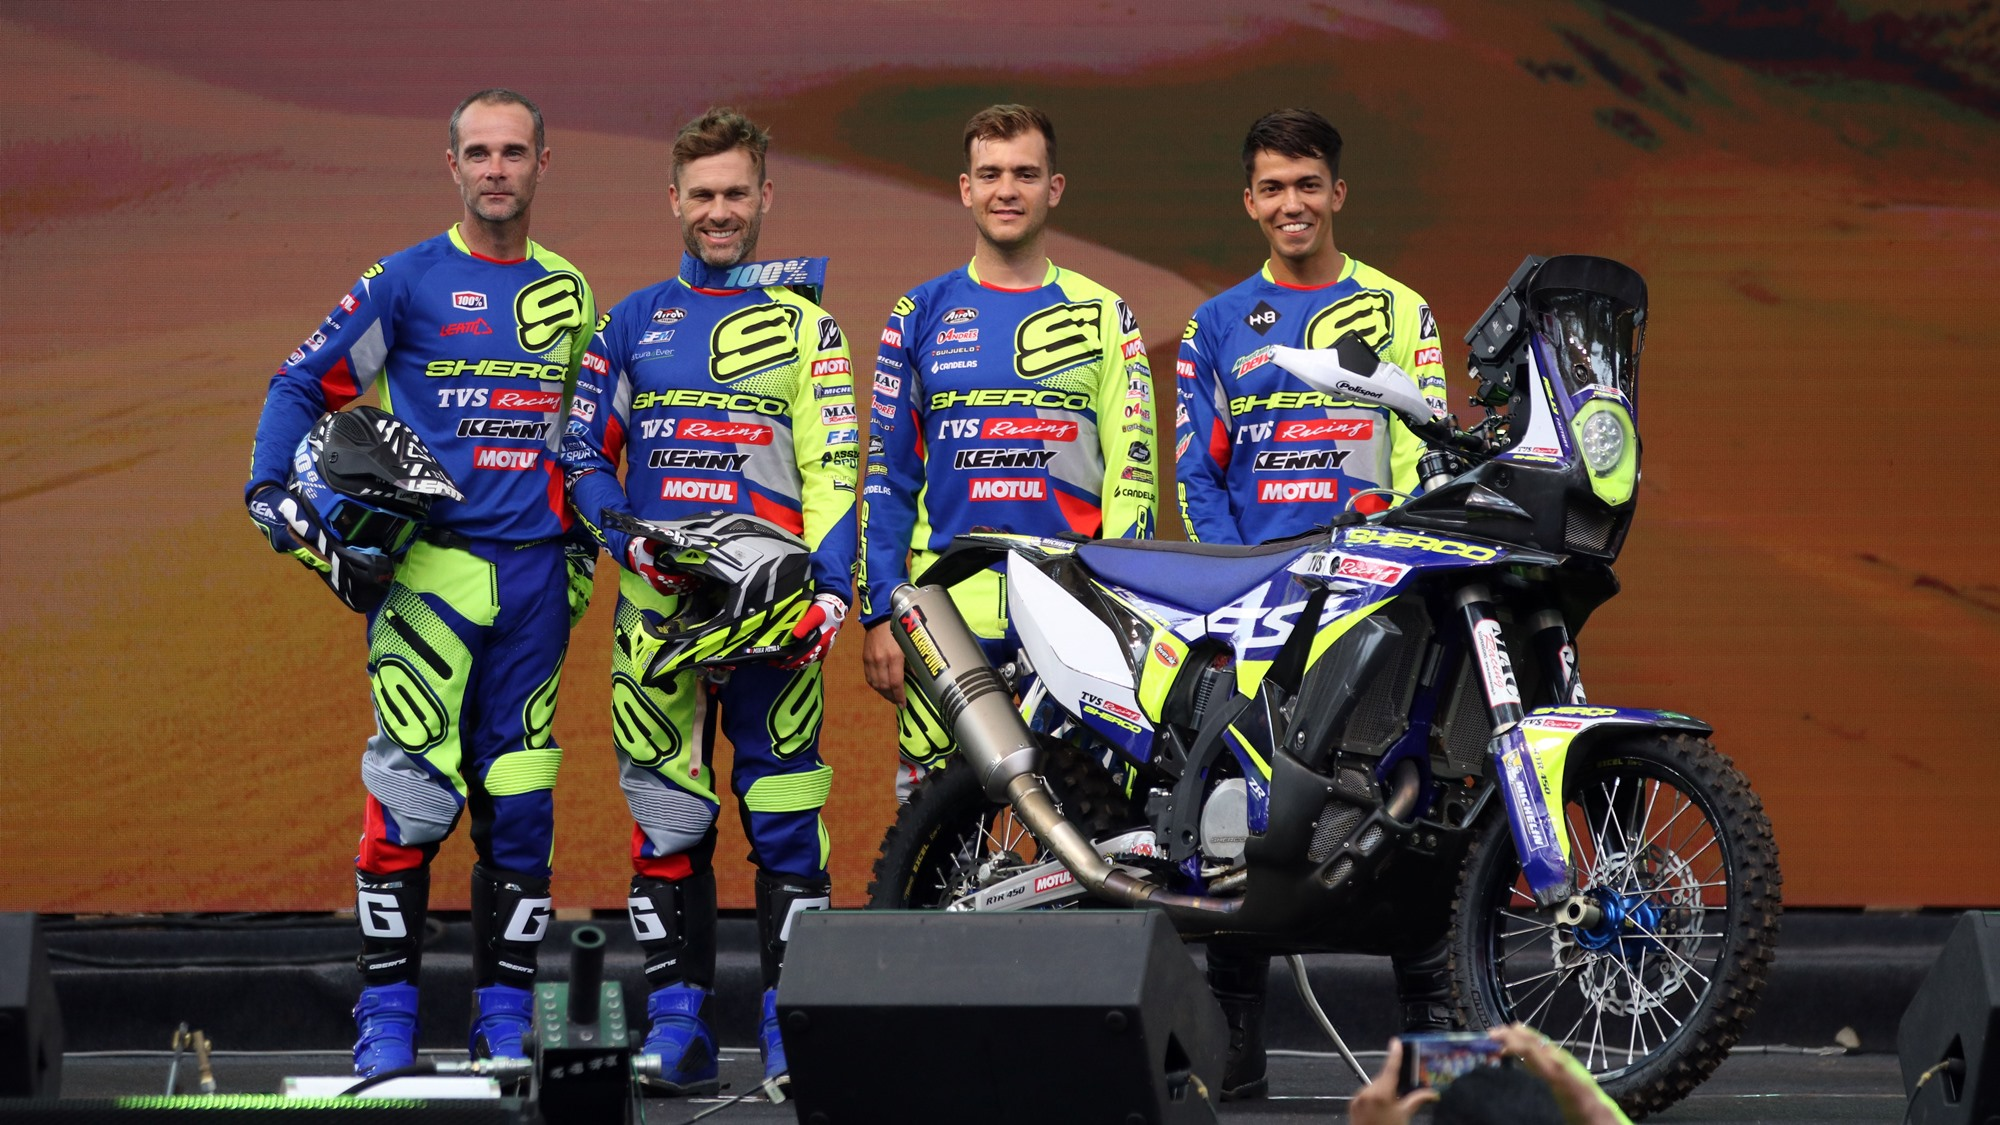 Sherco TVS Rally Factory Team announces riders for Dakar Rally 2020 - (From left)Johnny Aubert, Michael Metge, Lorenzo Santolino, Harith Noah